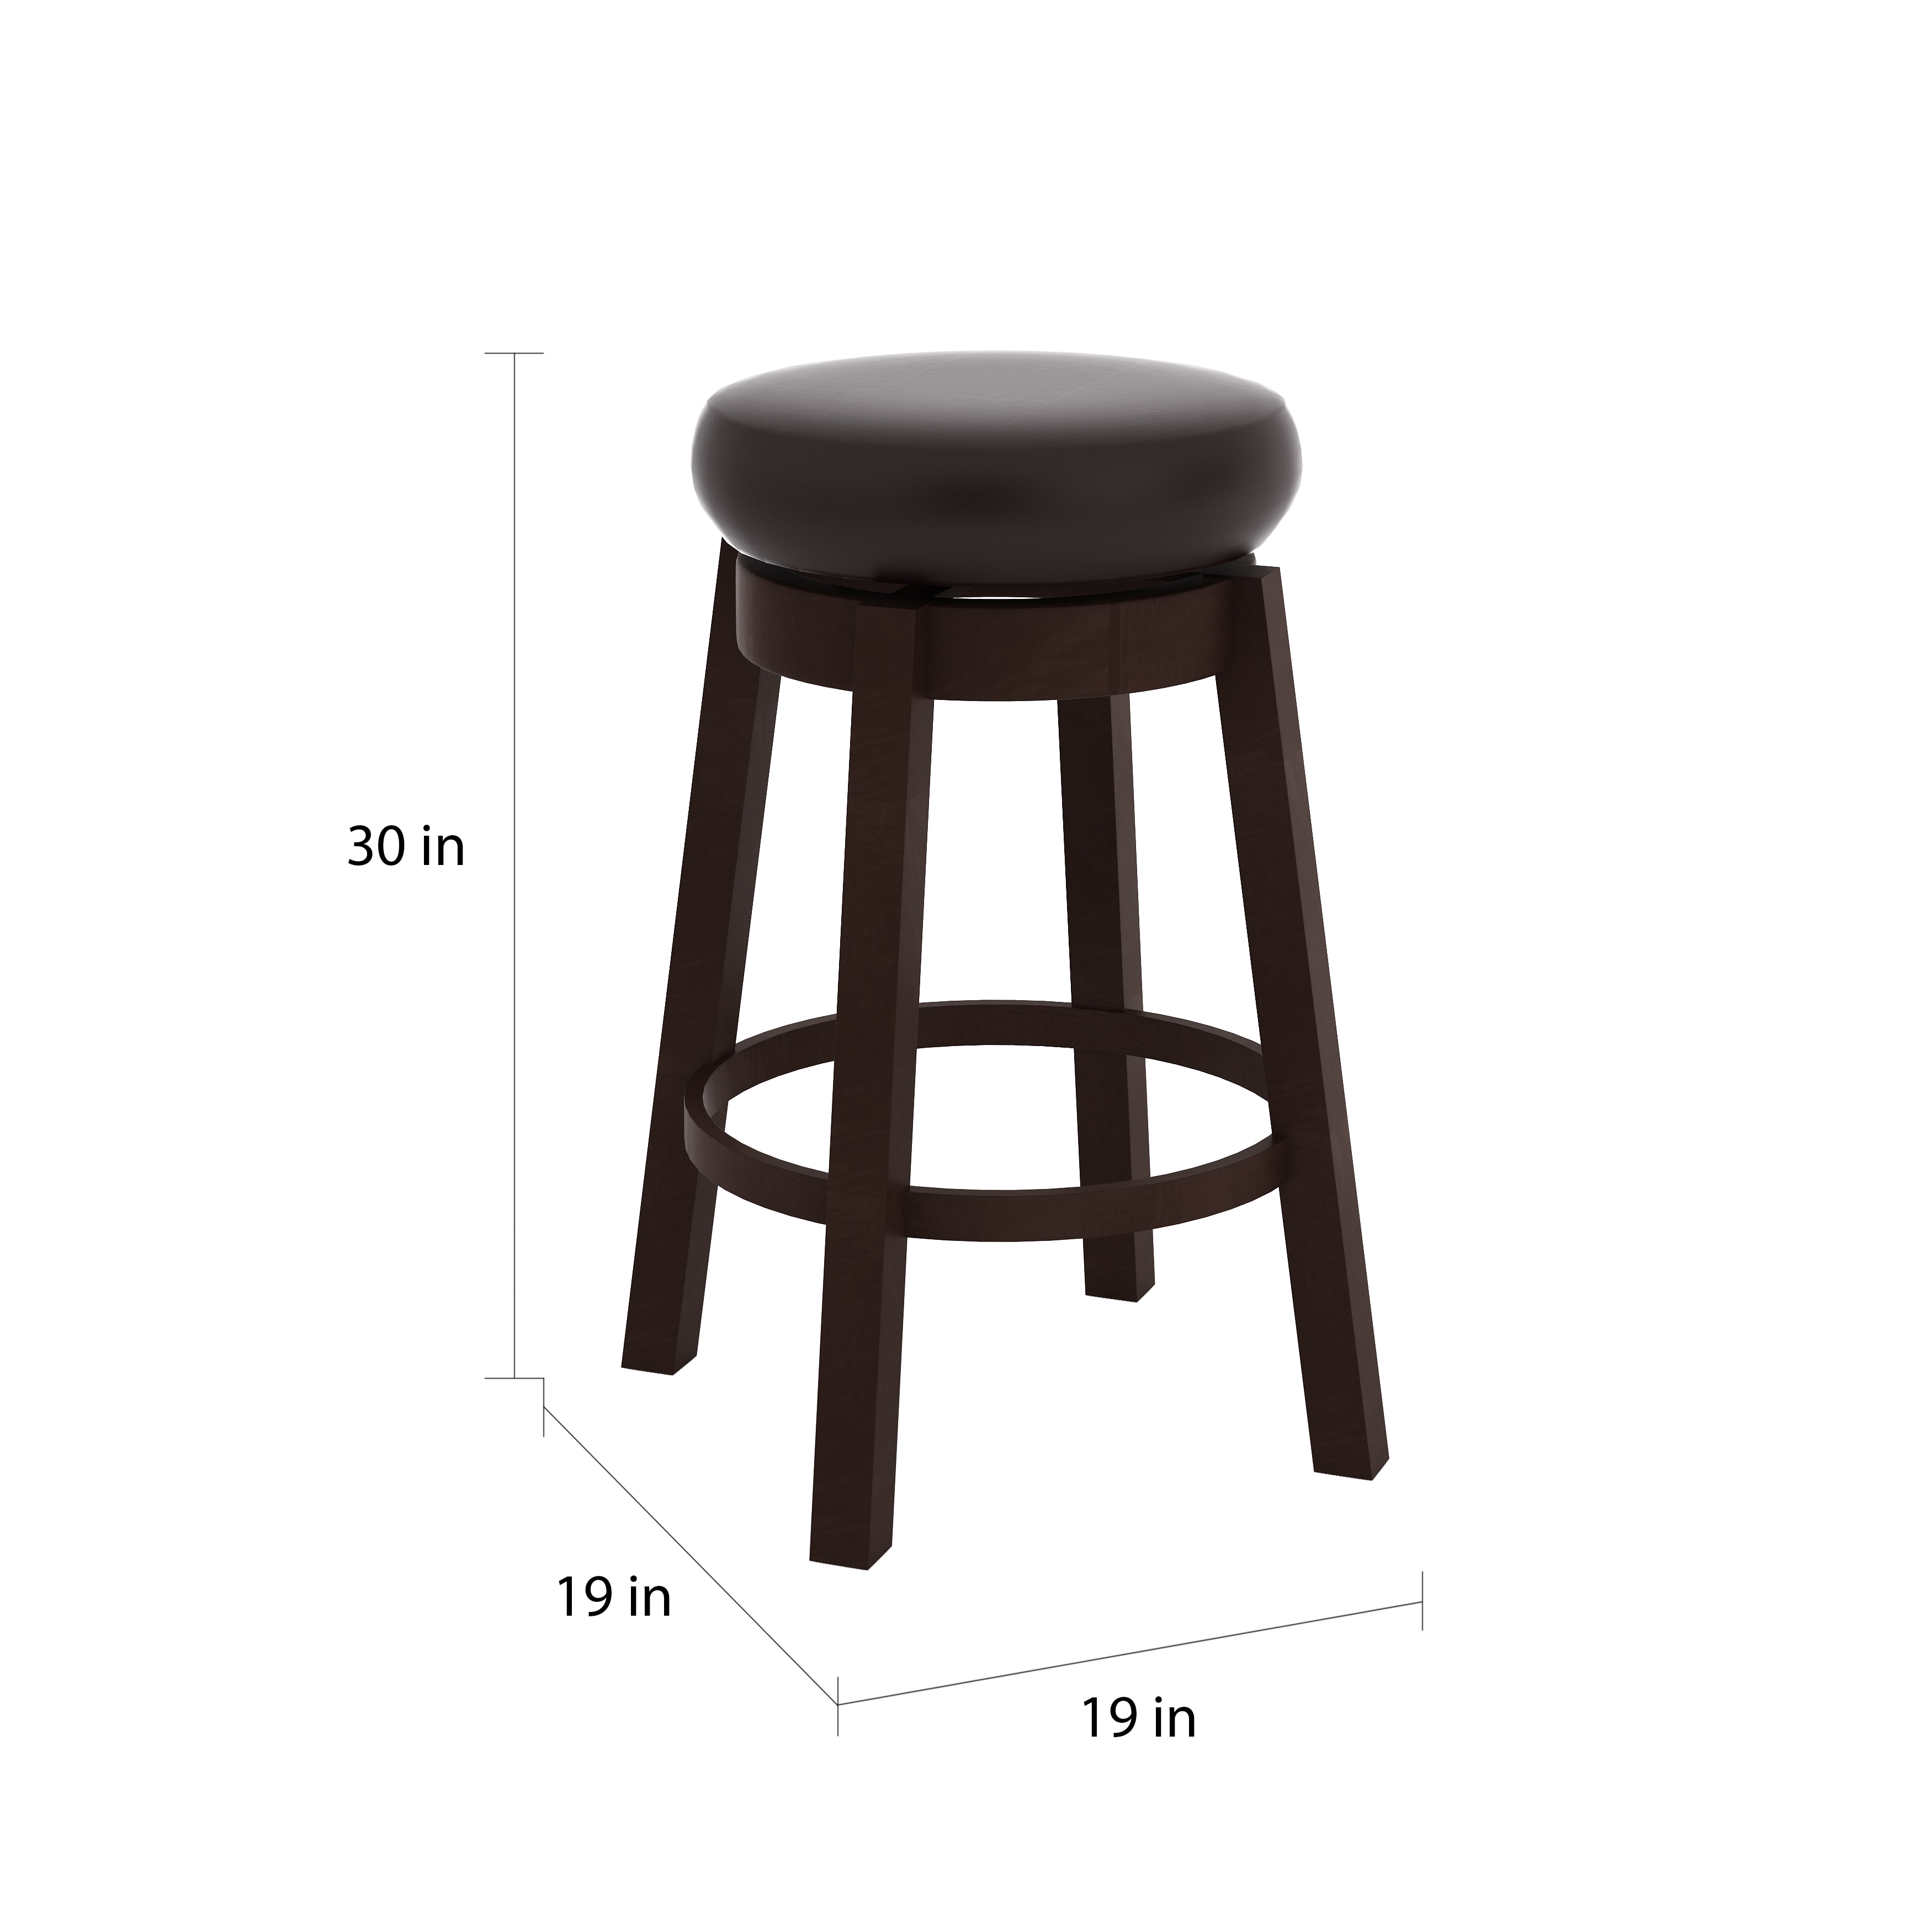 Copper Grove Humboldt Swivel Faux Leather Circle Bar Stools Set Of 2